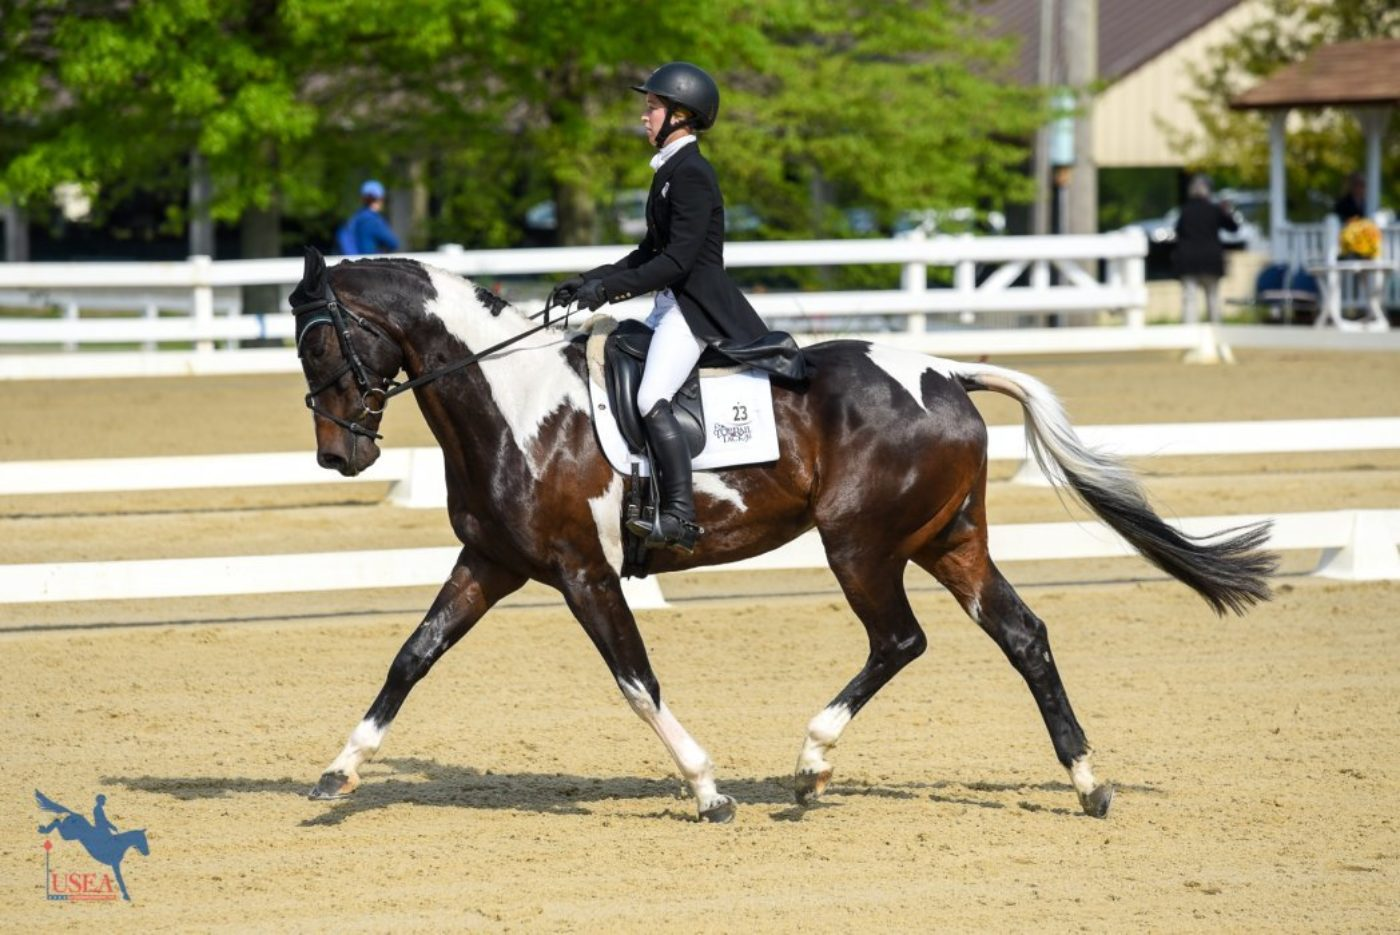 17th - Cornelia Dorr and Sir Patico M - 41.1